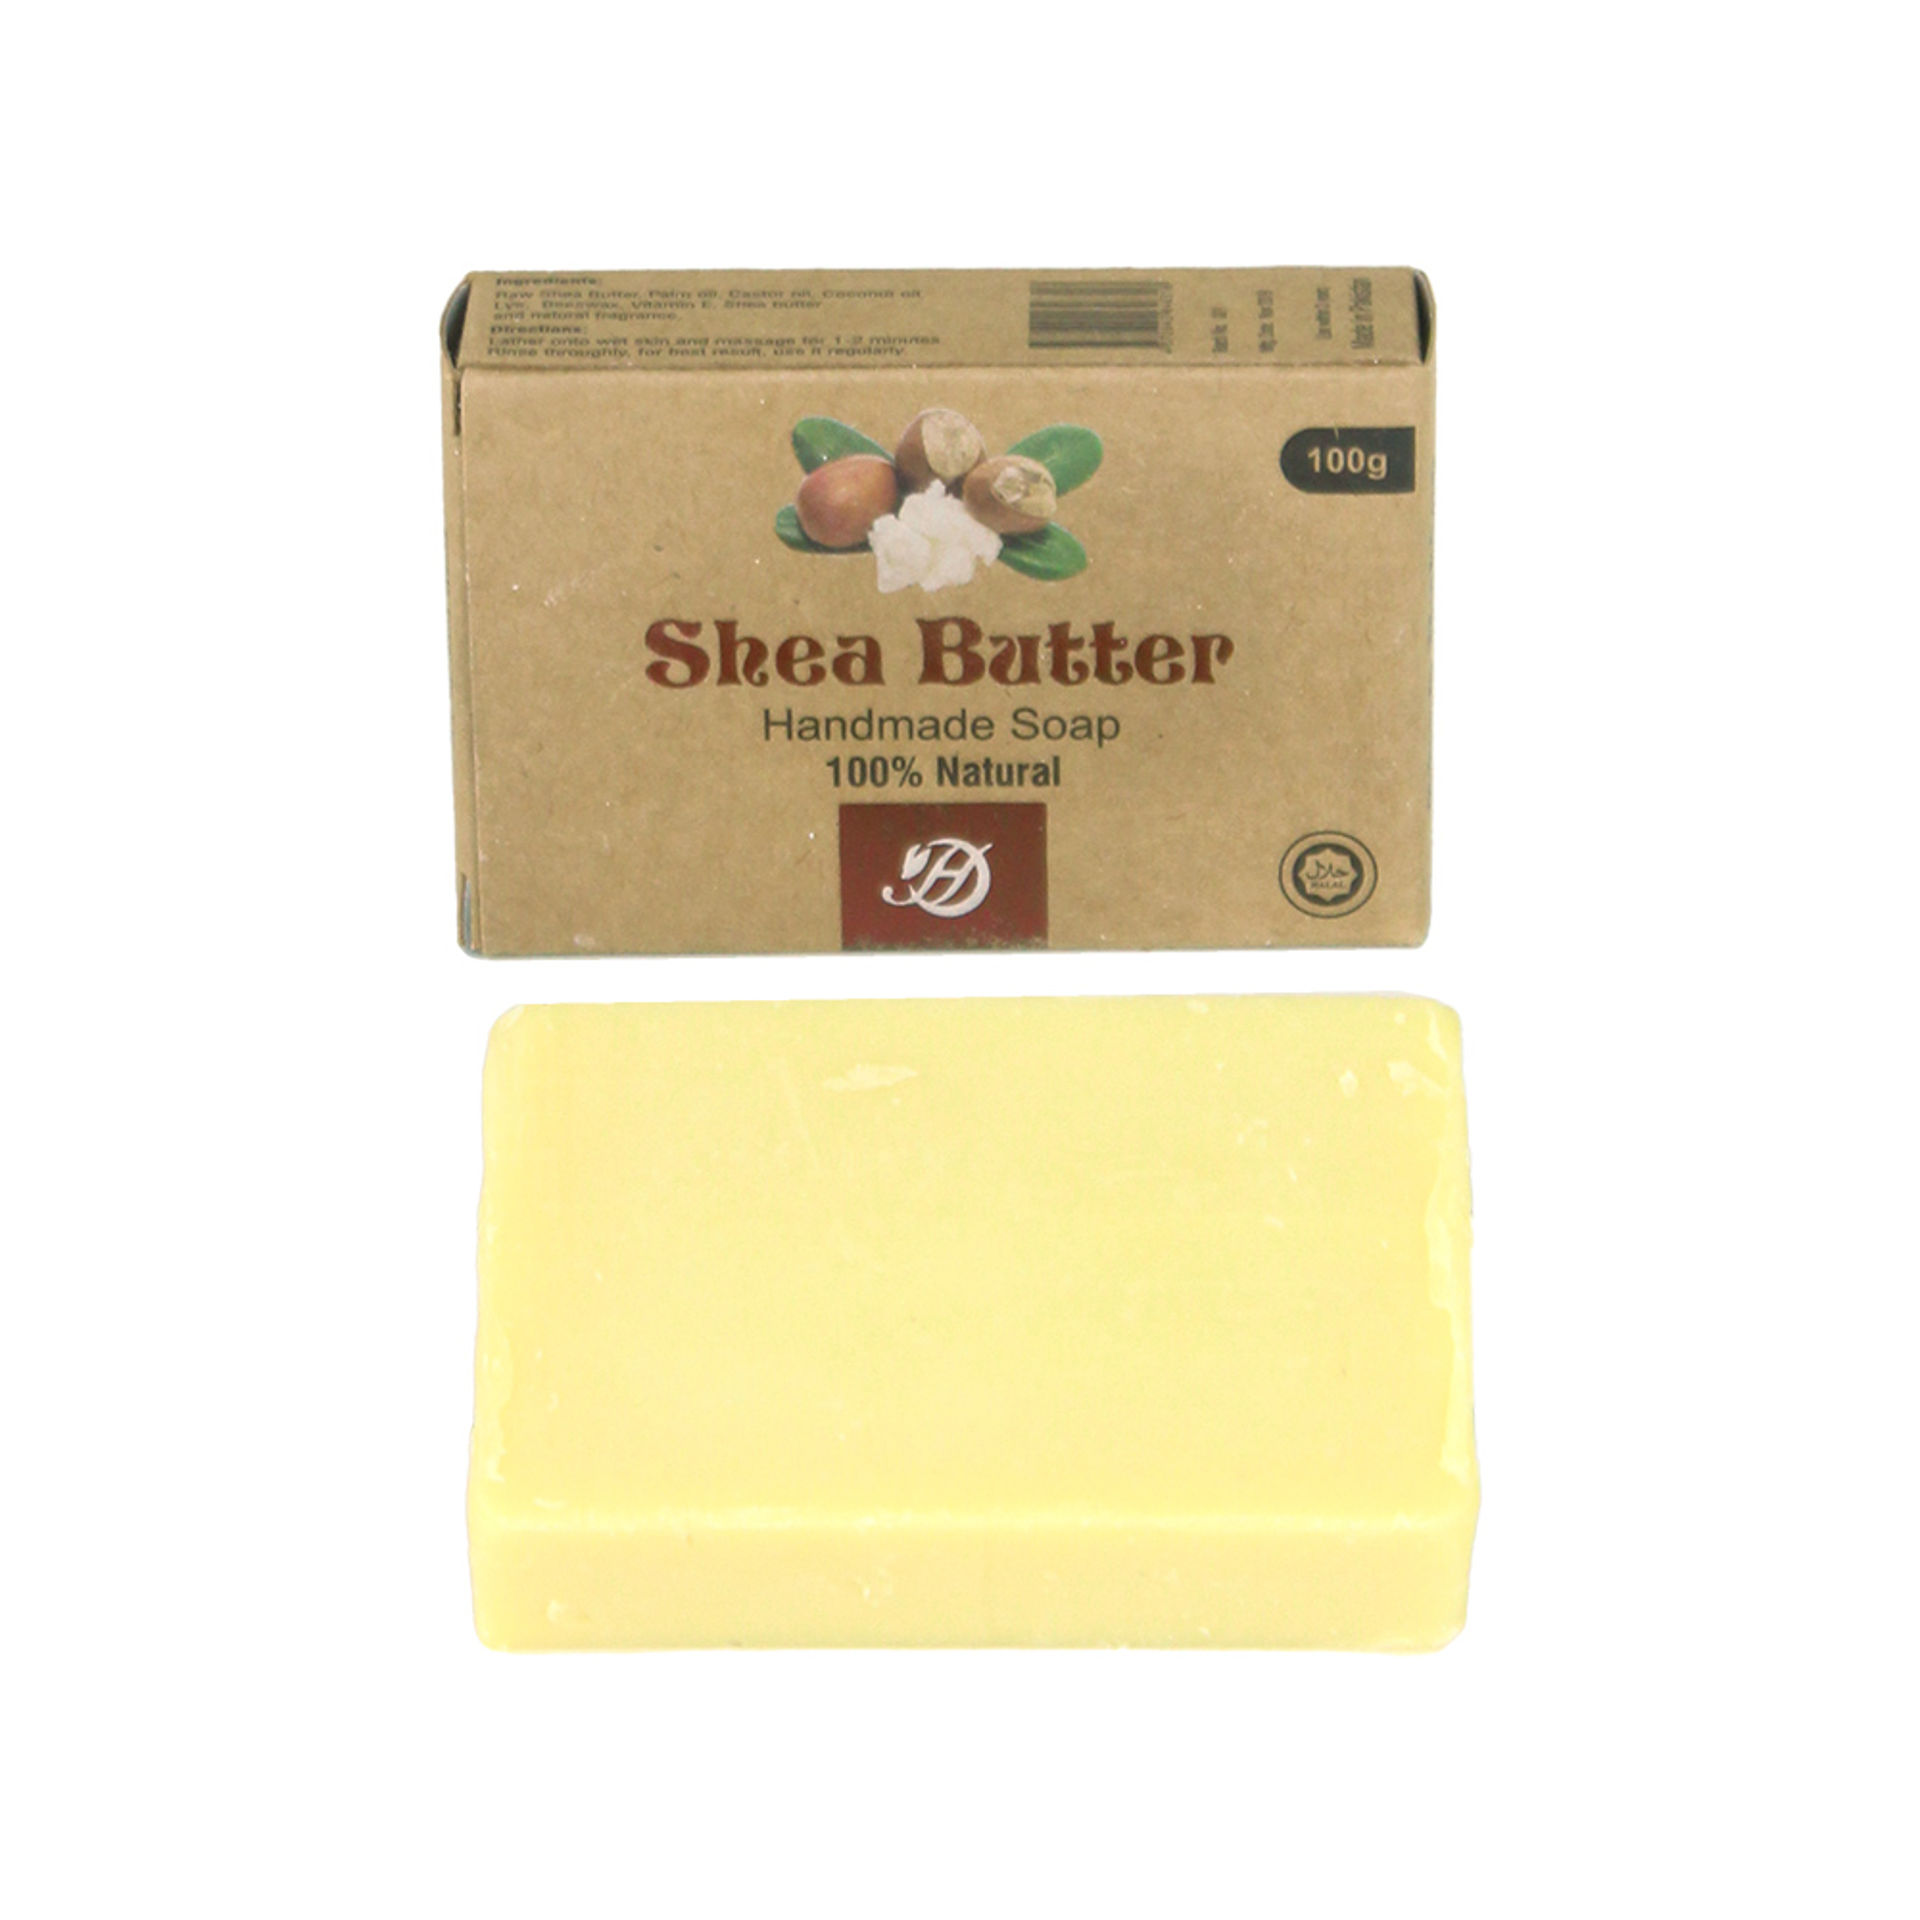 Picture of Handmade Shea Butter Soap 100% Natural